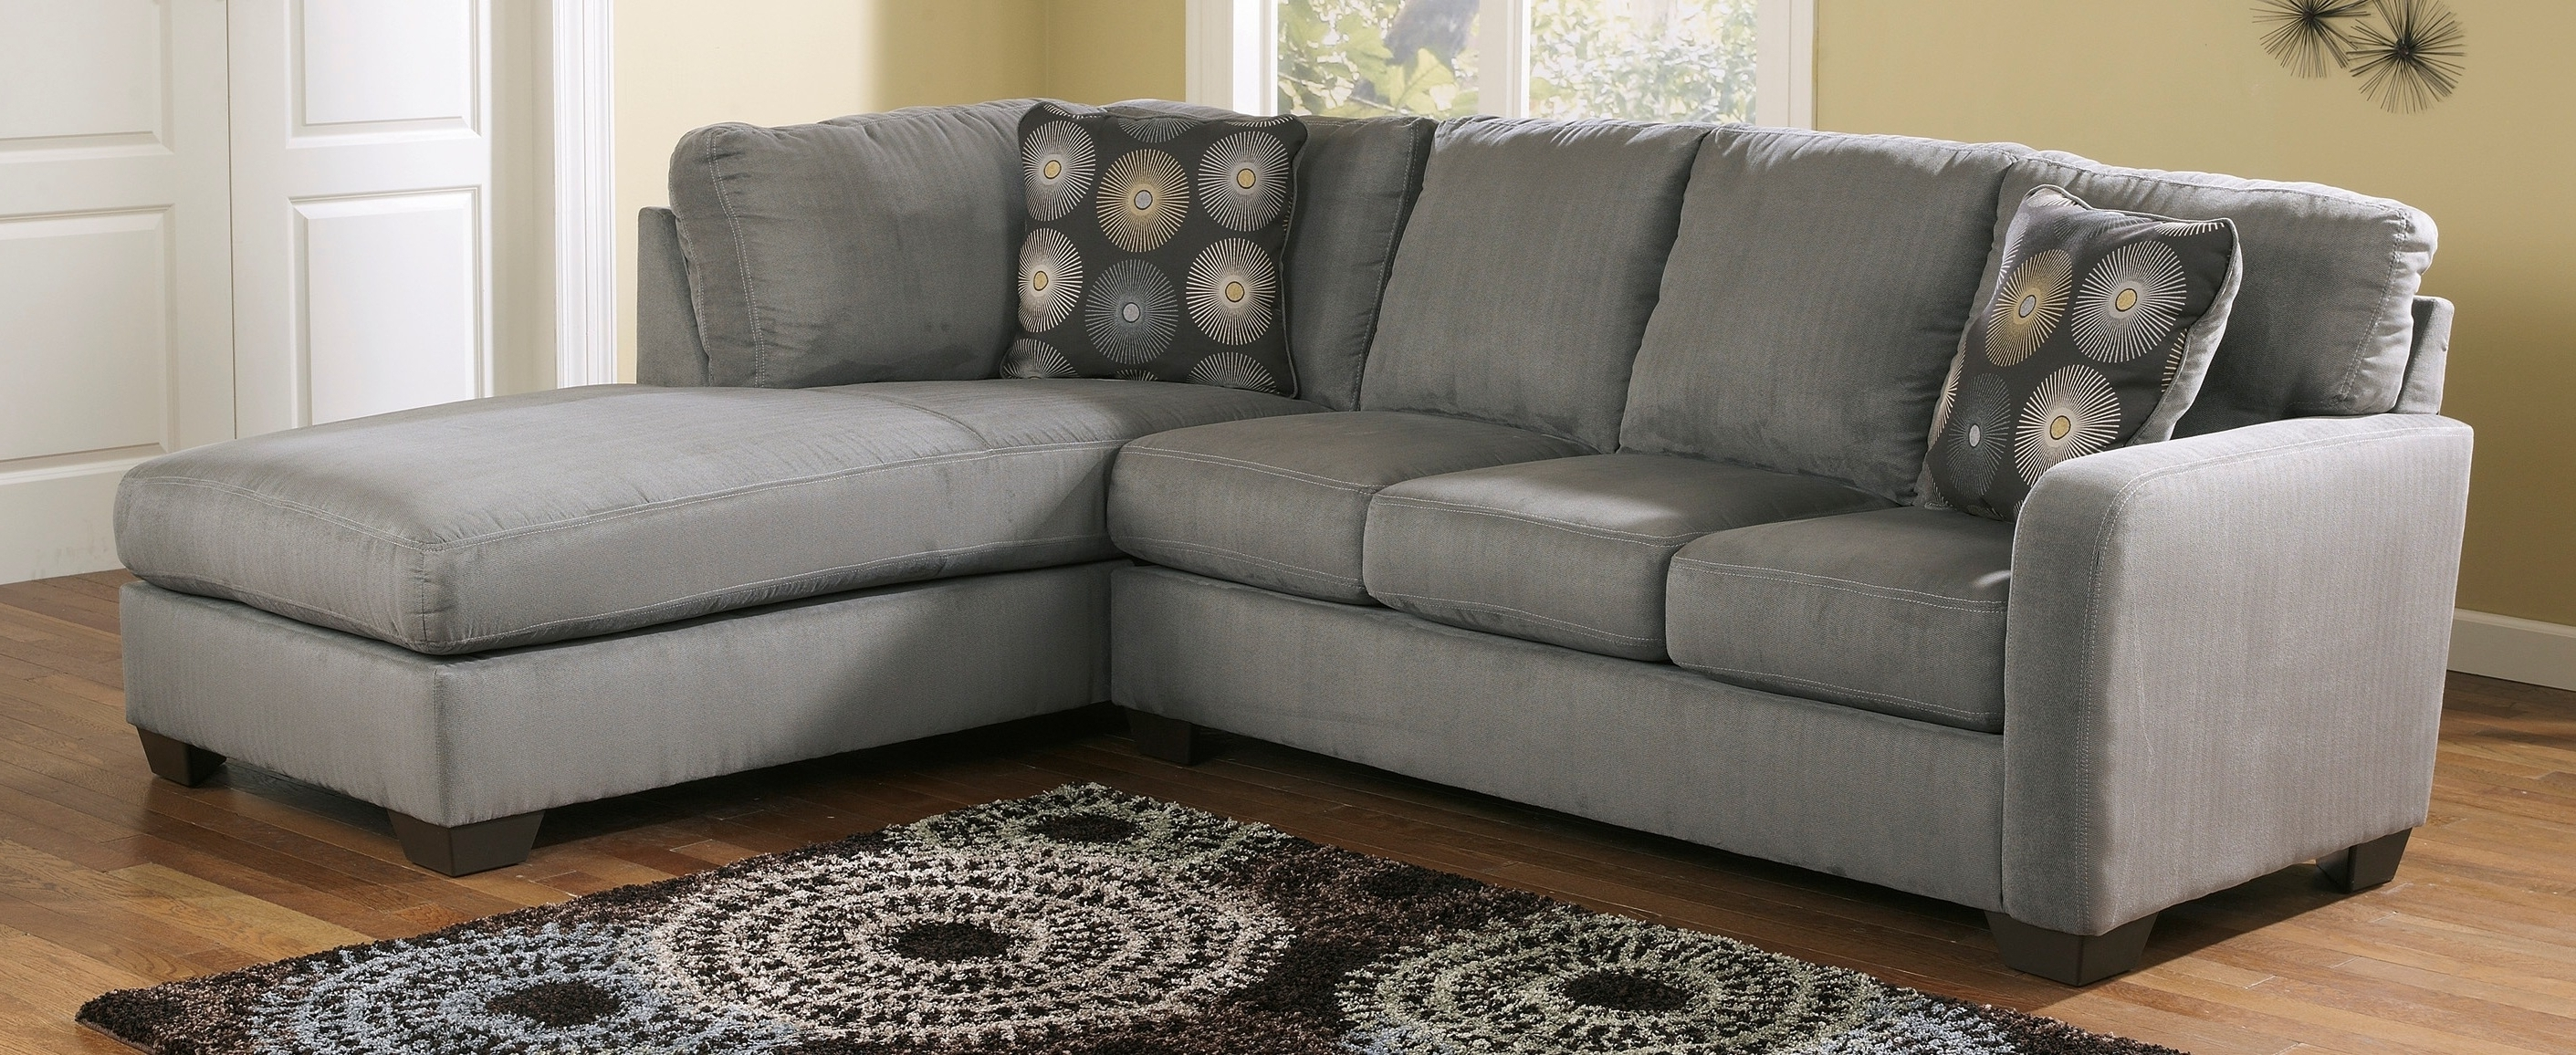 Fashionable Buy Ashley Furniture 7020066 7020017 Zella Charcoal Raf Corner Inside Charcoal Sectionals With Chaise (View 6 of 15)